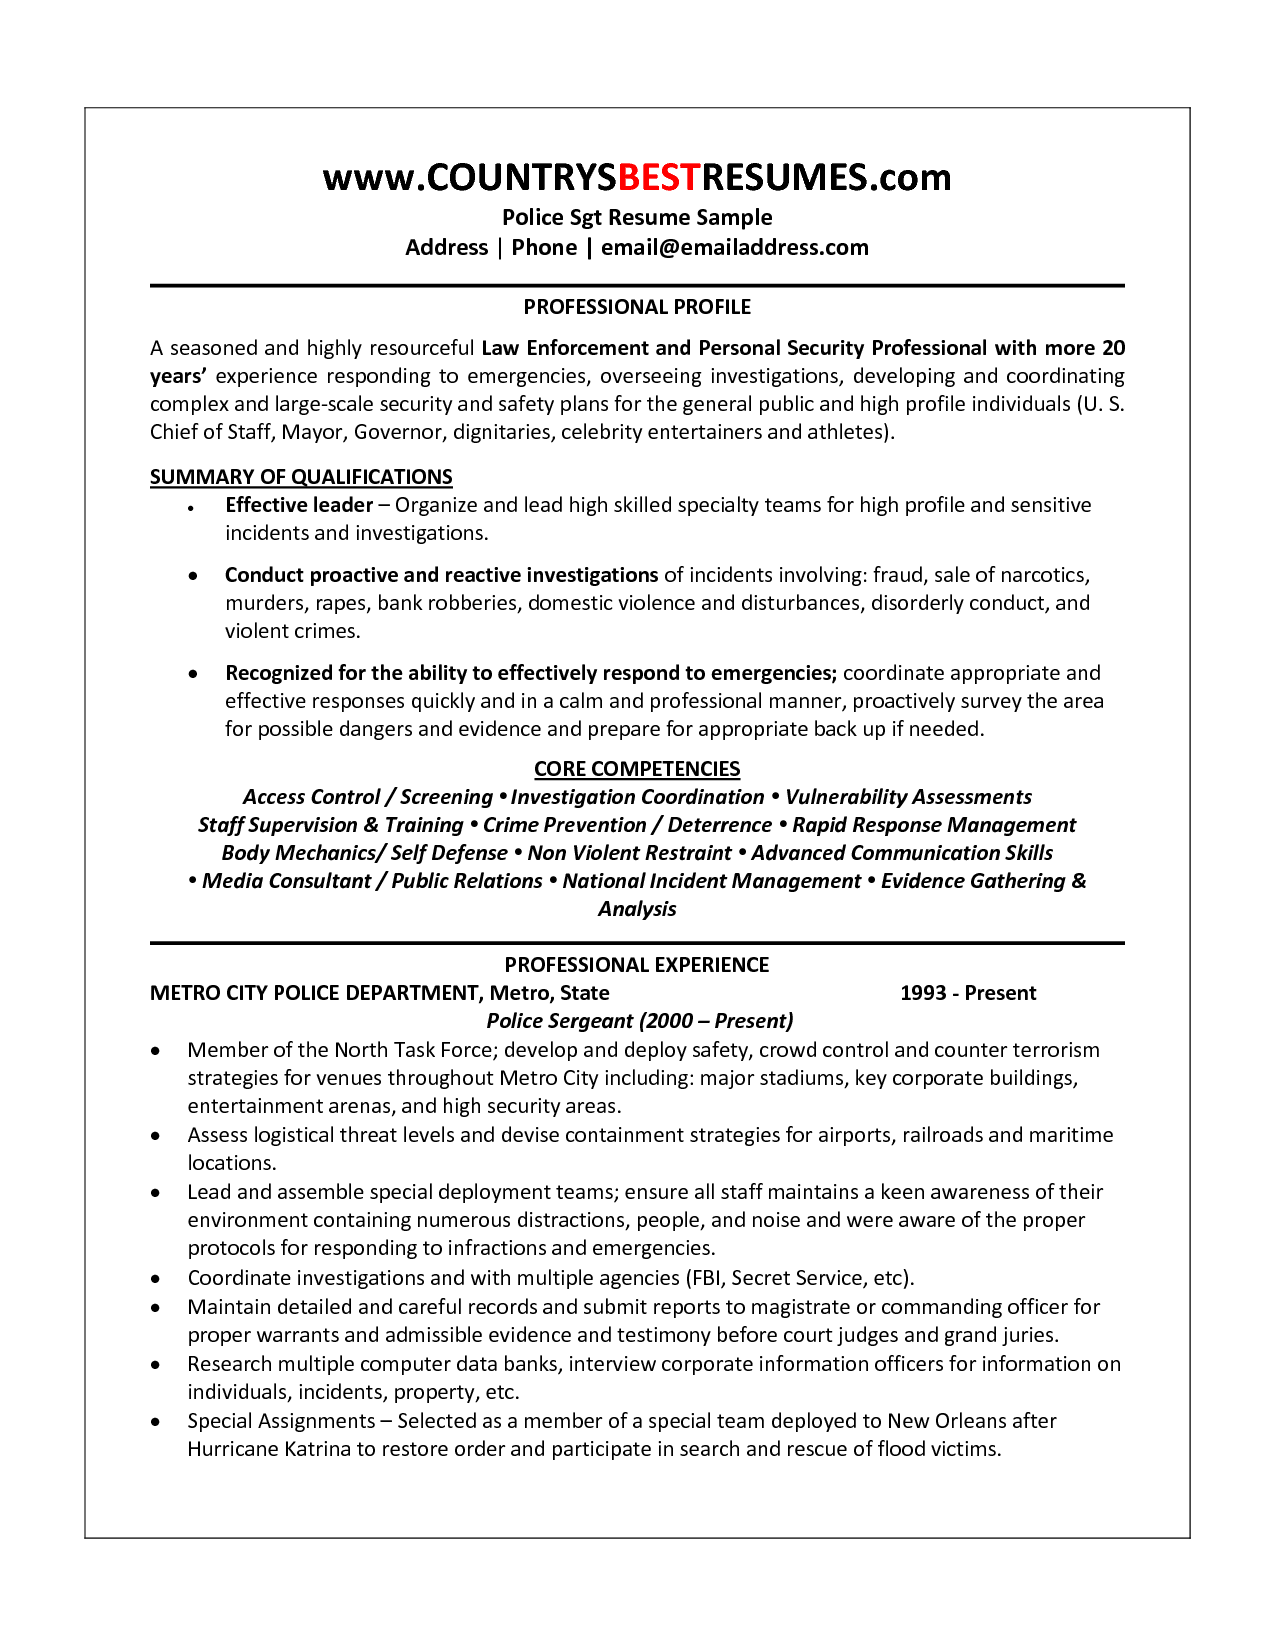 Samples Of Curriculum Vitae Sample Police Resume Cover Letter Help Military Format For